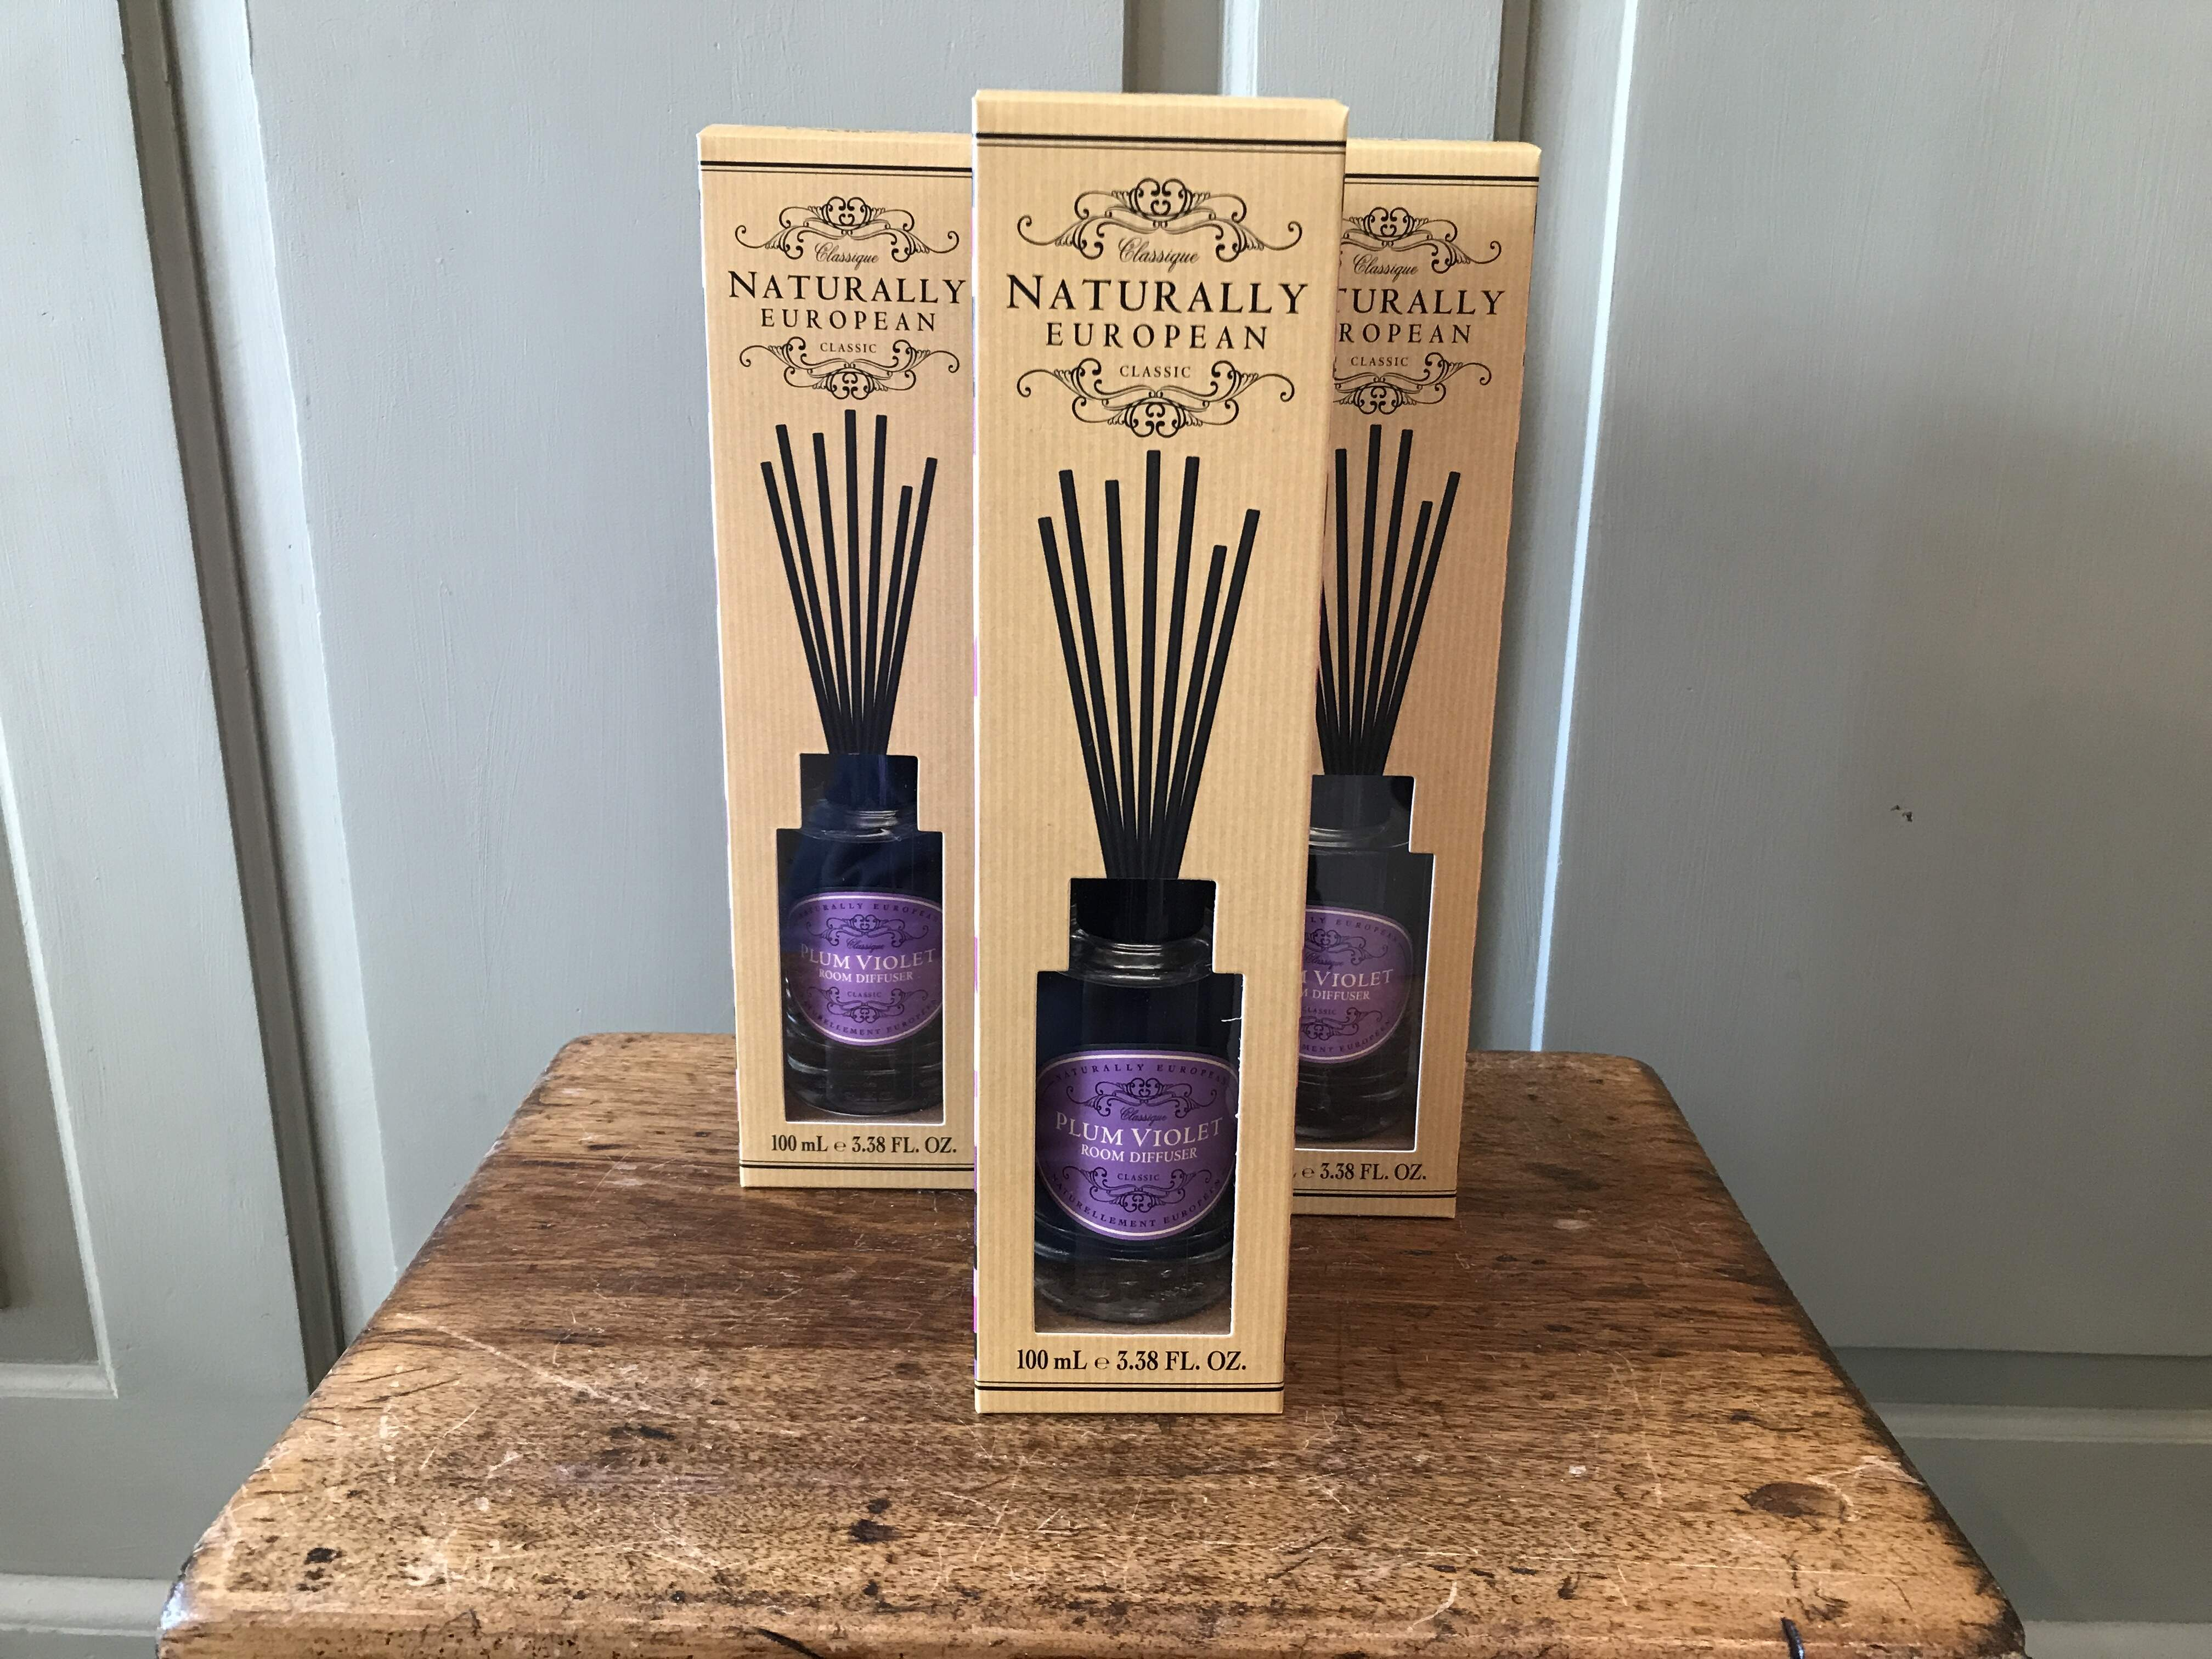 Naturally European Plum Violet Diffuser